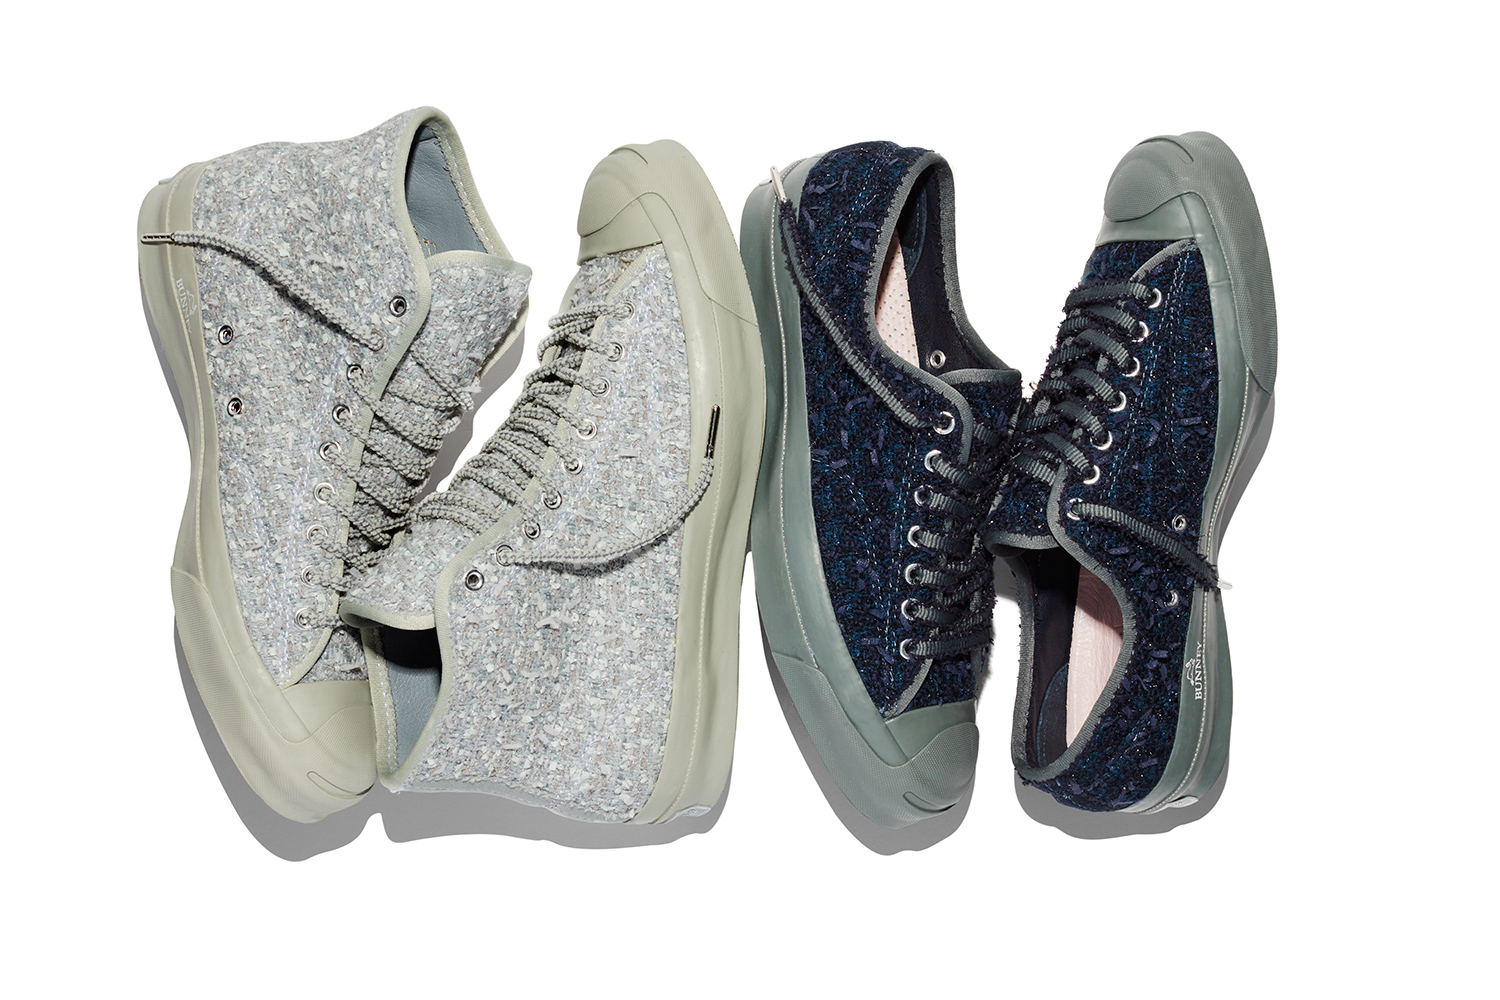 Converse And BUNNEY Release Jack Purcell Silhouette